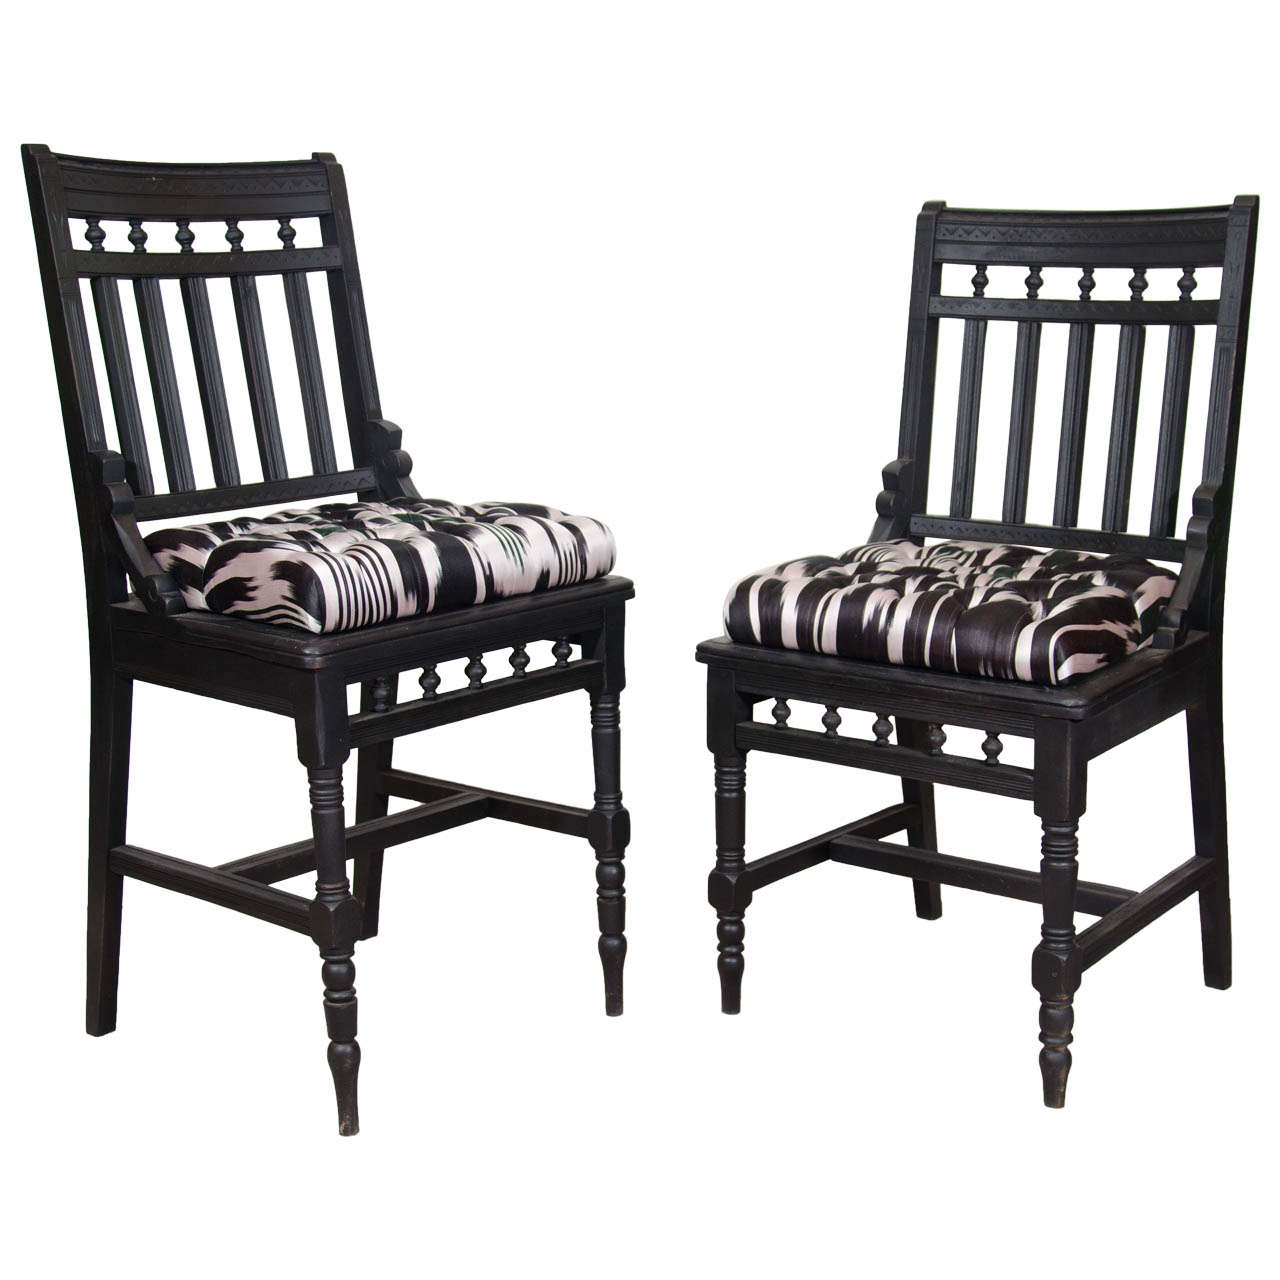 An Antique Set of His And Hers Eastlake Side Chairs - Antique Eastlake Chair In Eastern African Fabric For Sale At 1stdibs